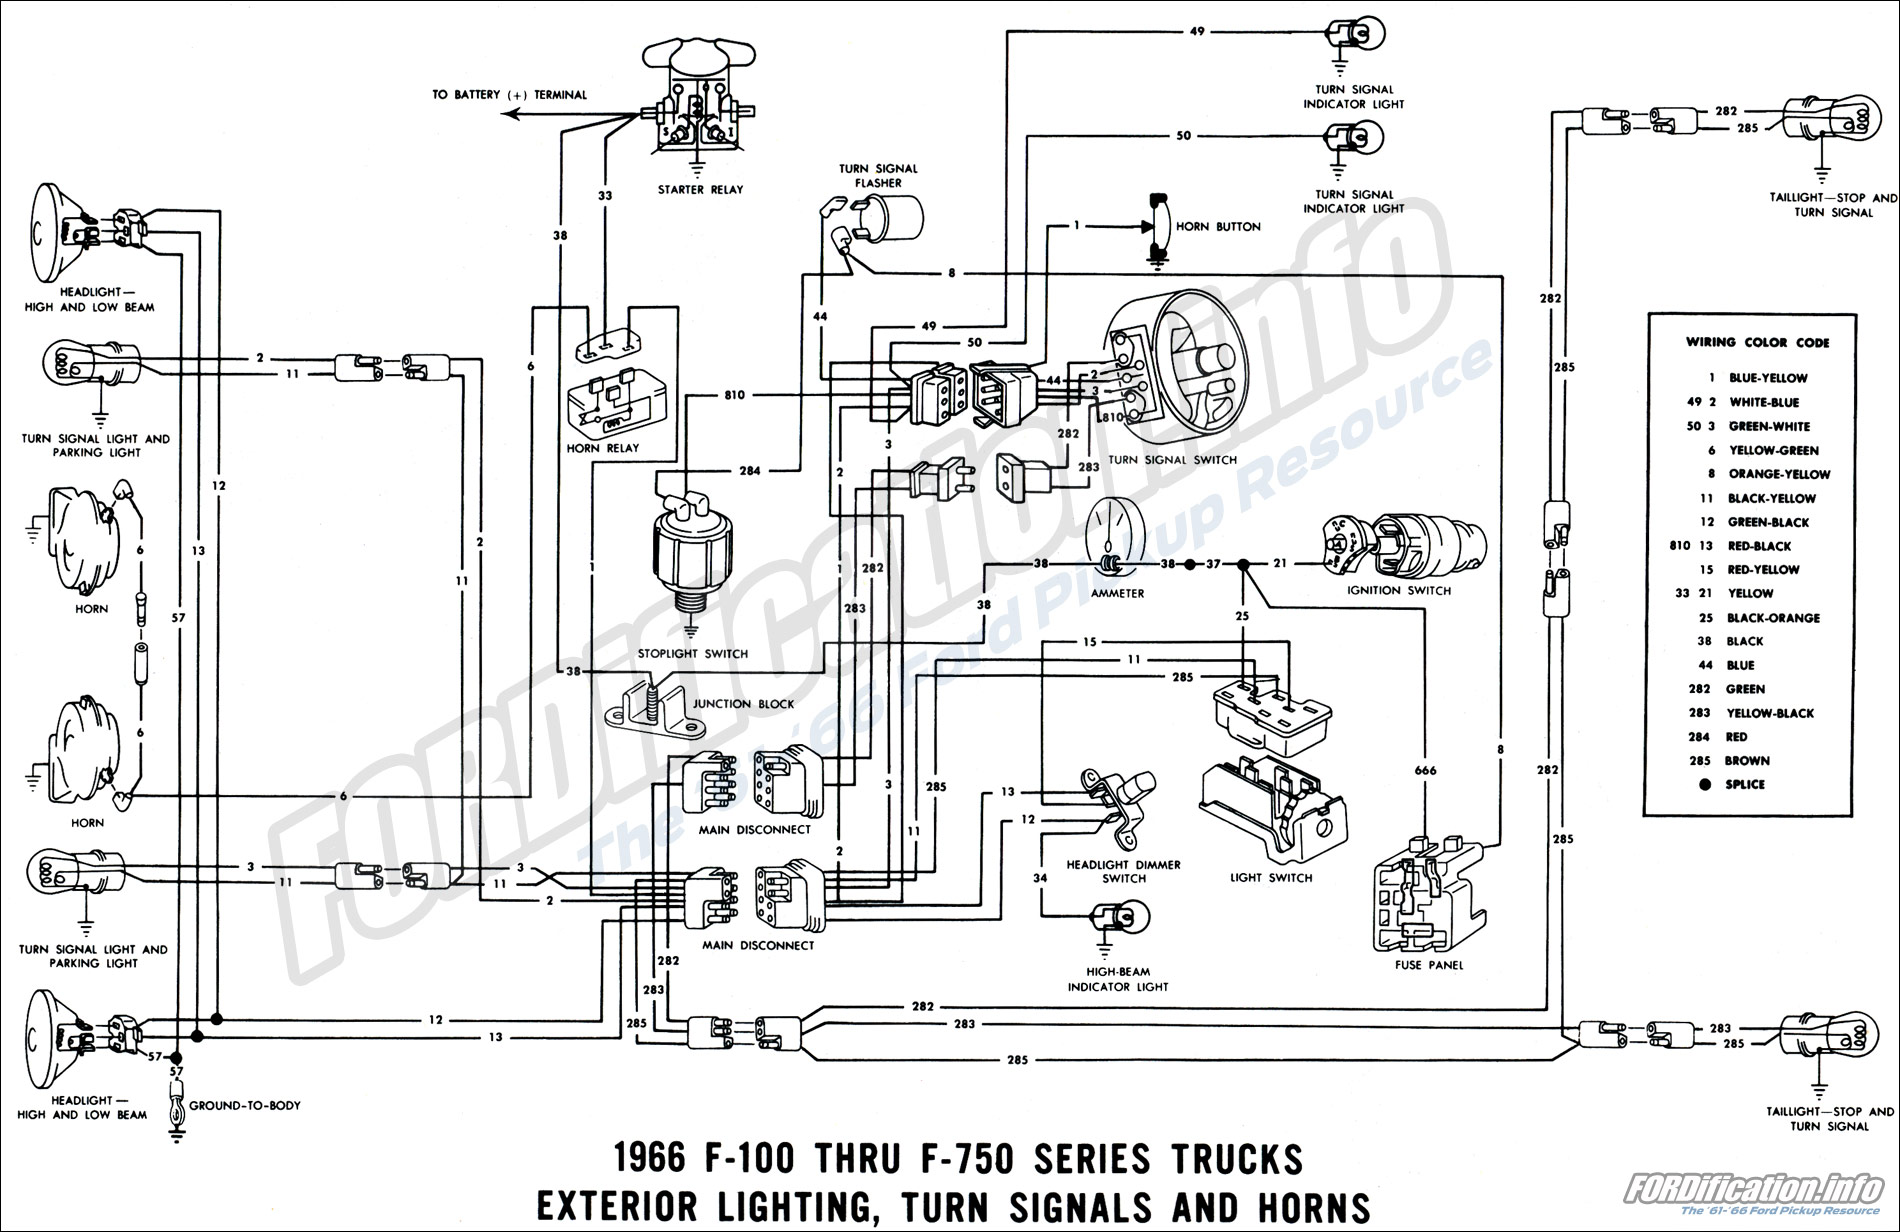 F100 Turn Signal Wiring Diagram. Wiring. Wiring Diagram Images